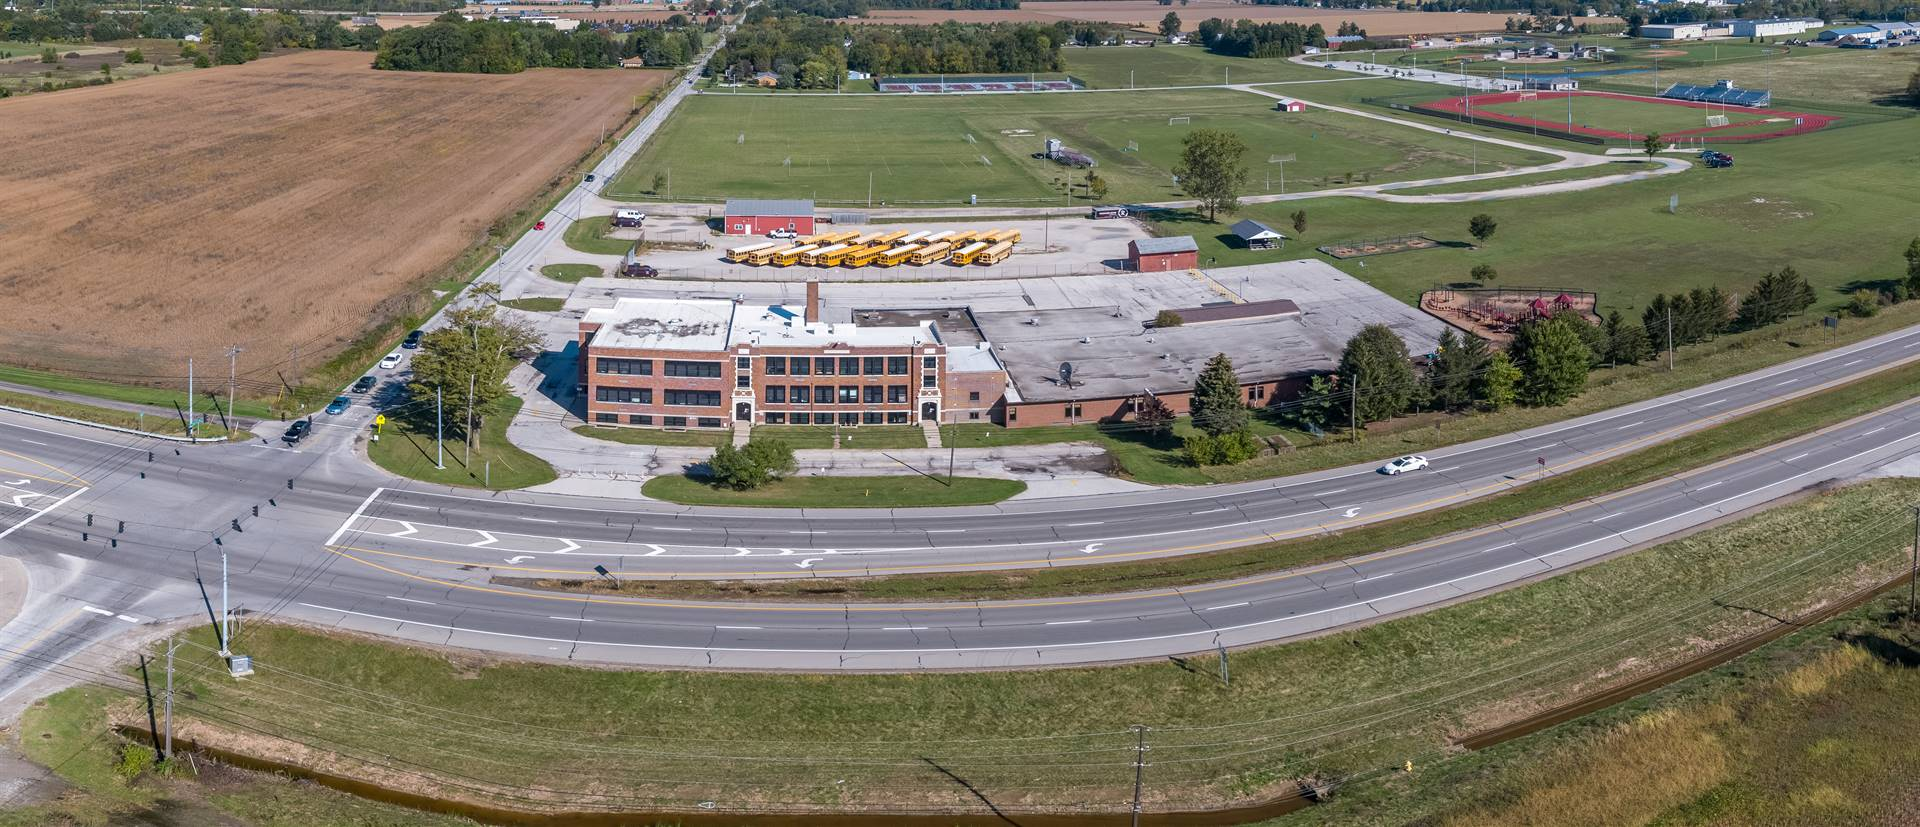 Aerial photo of Glenwood Elementary